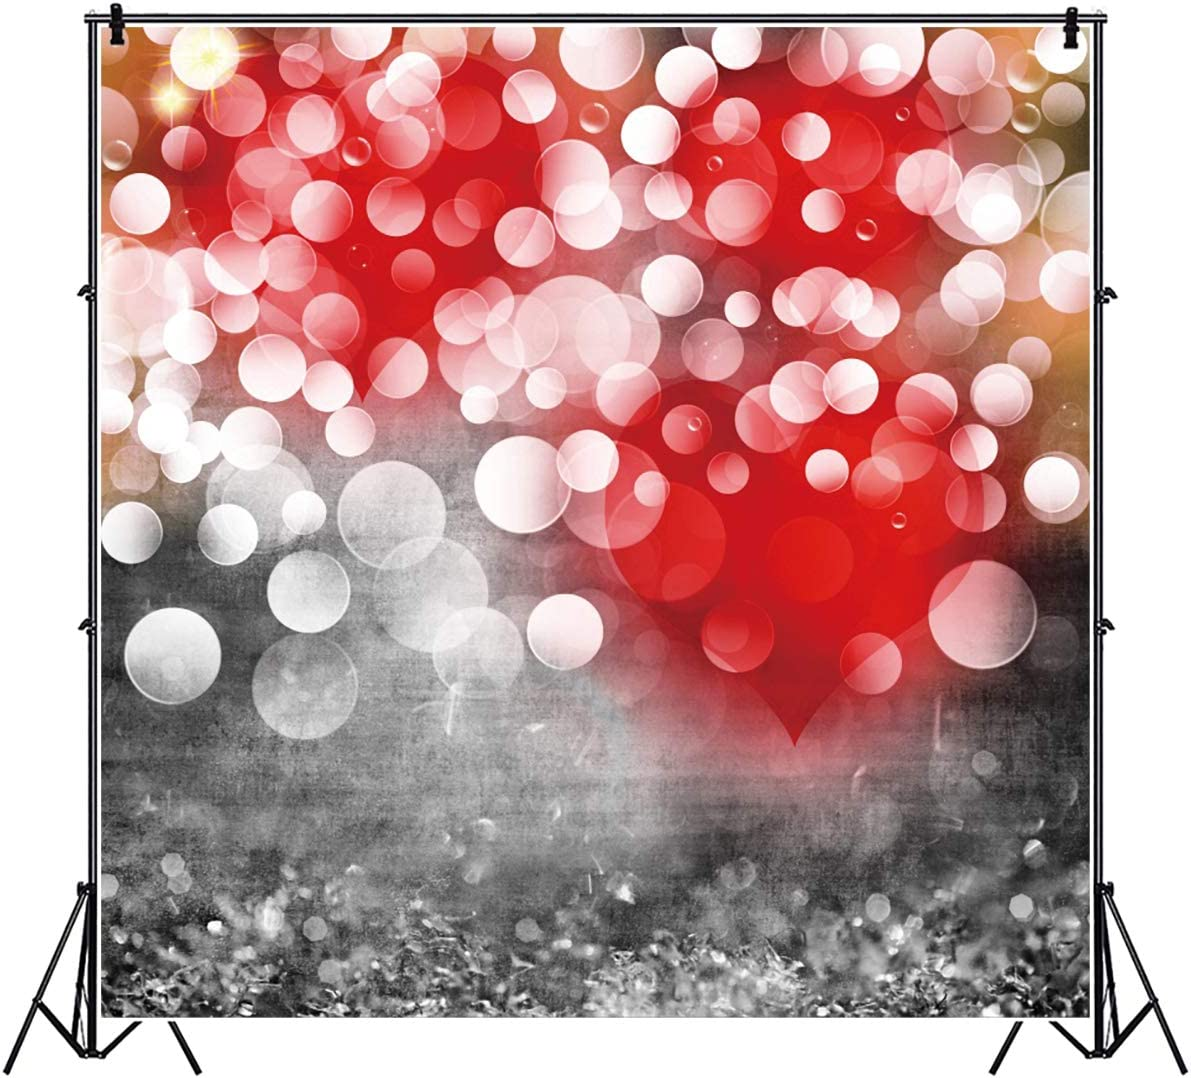 7x10 FT Vinyl Photography Backdrop,Heart Pearl Necklace Design Vintage Accessory Love Valentines Celebrating Artwork Background for Child Baby Shower Photo Studio Prop Photobooth Photoshoot